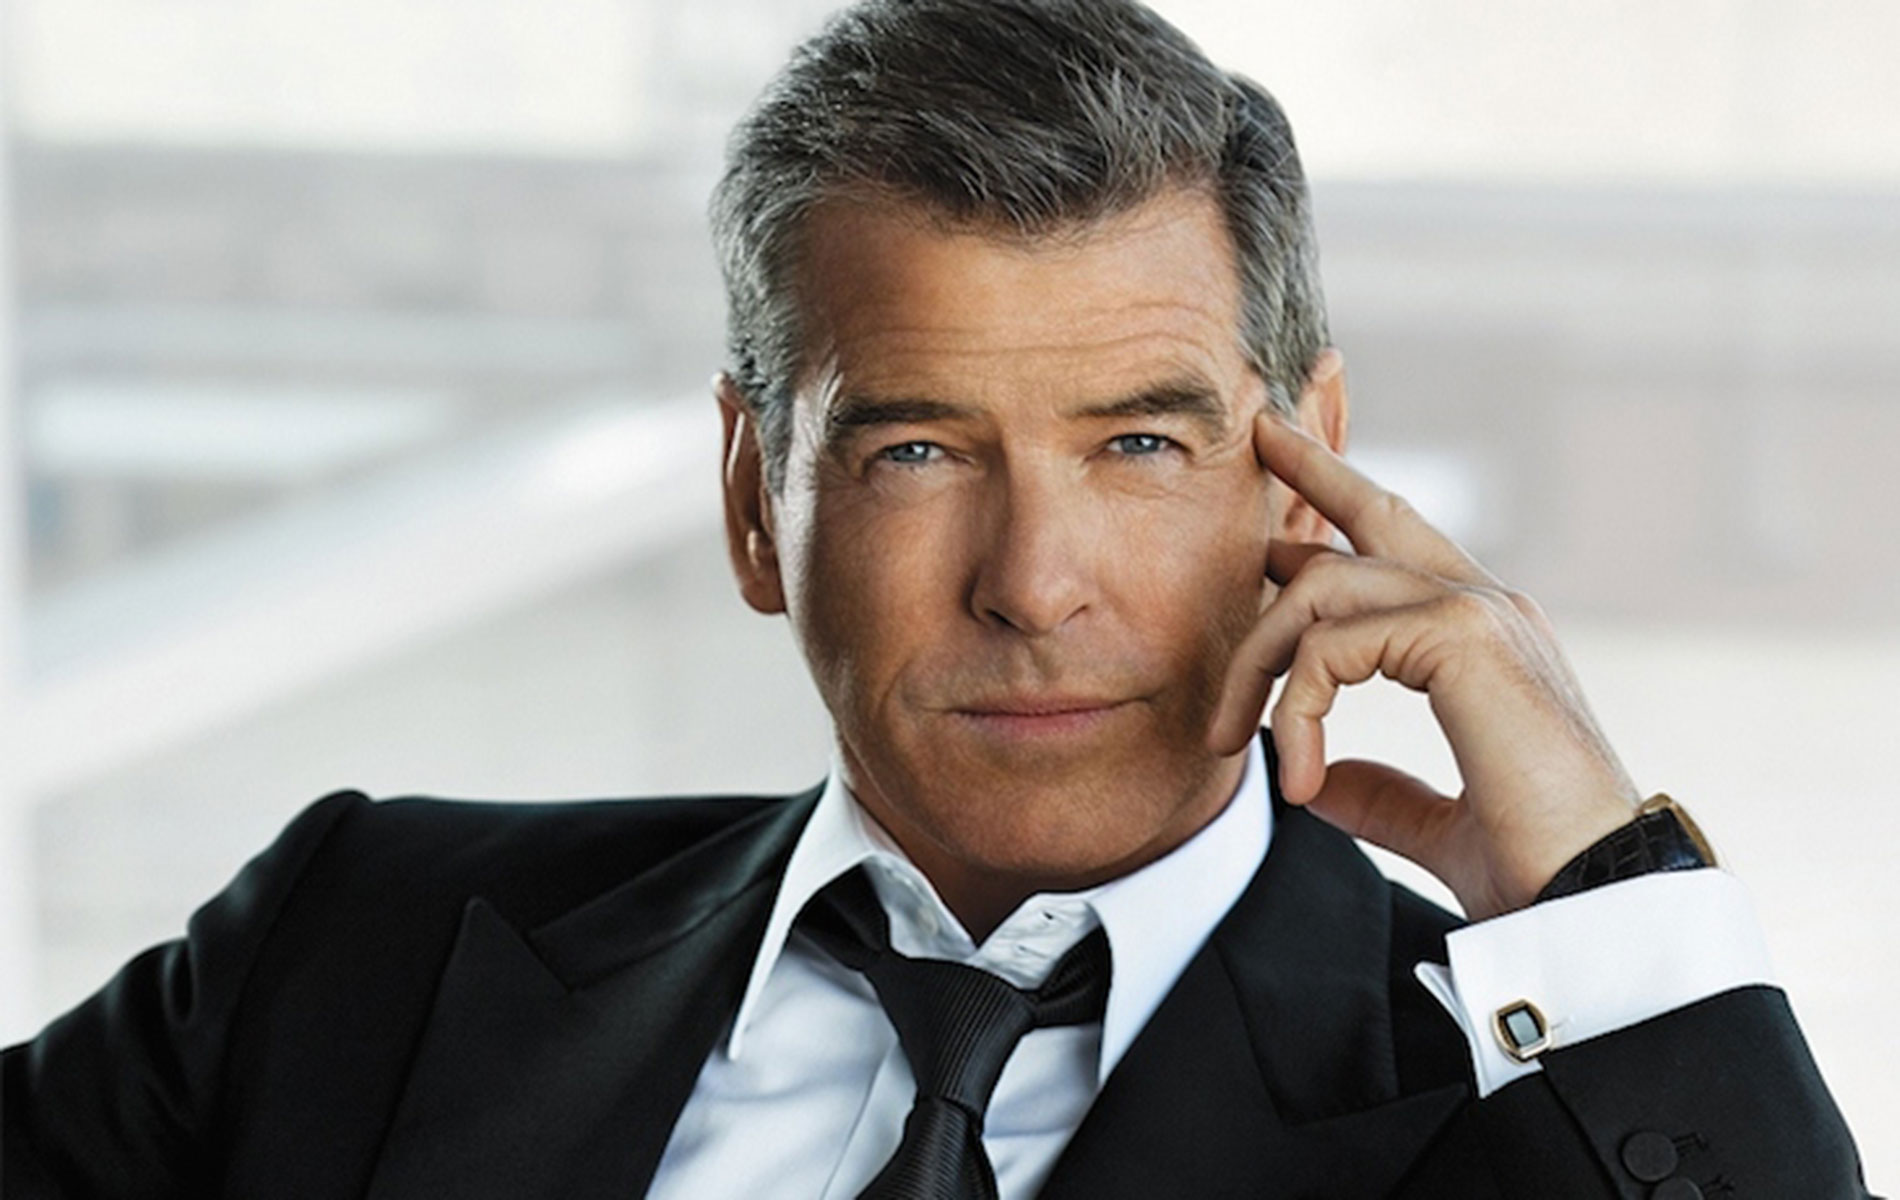 Could Pierce Brosnan's role in the FOX X-Universe Be Something Sinister?